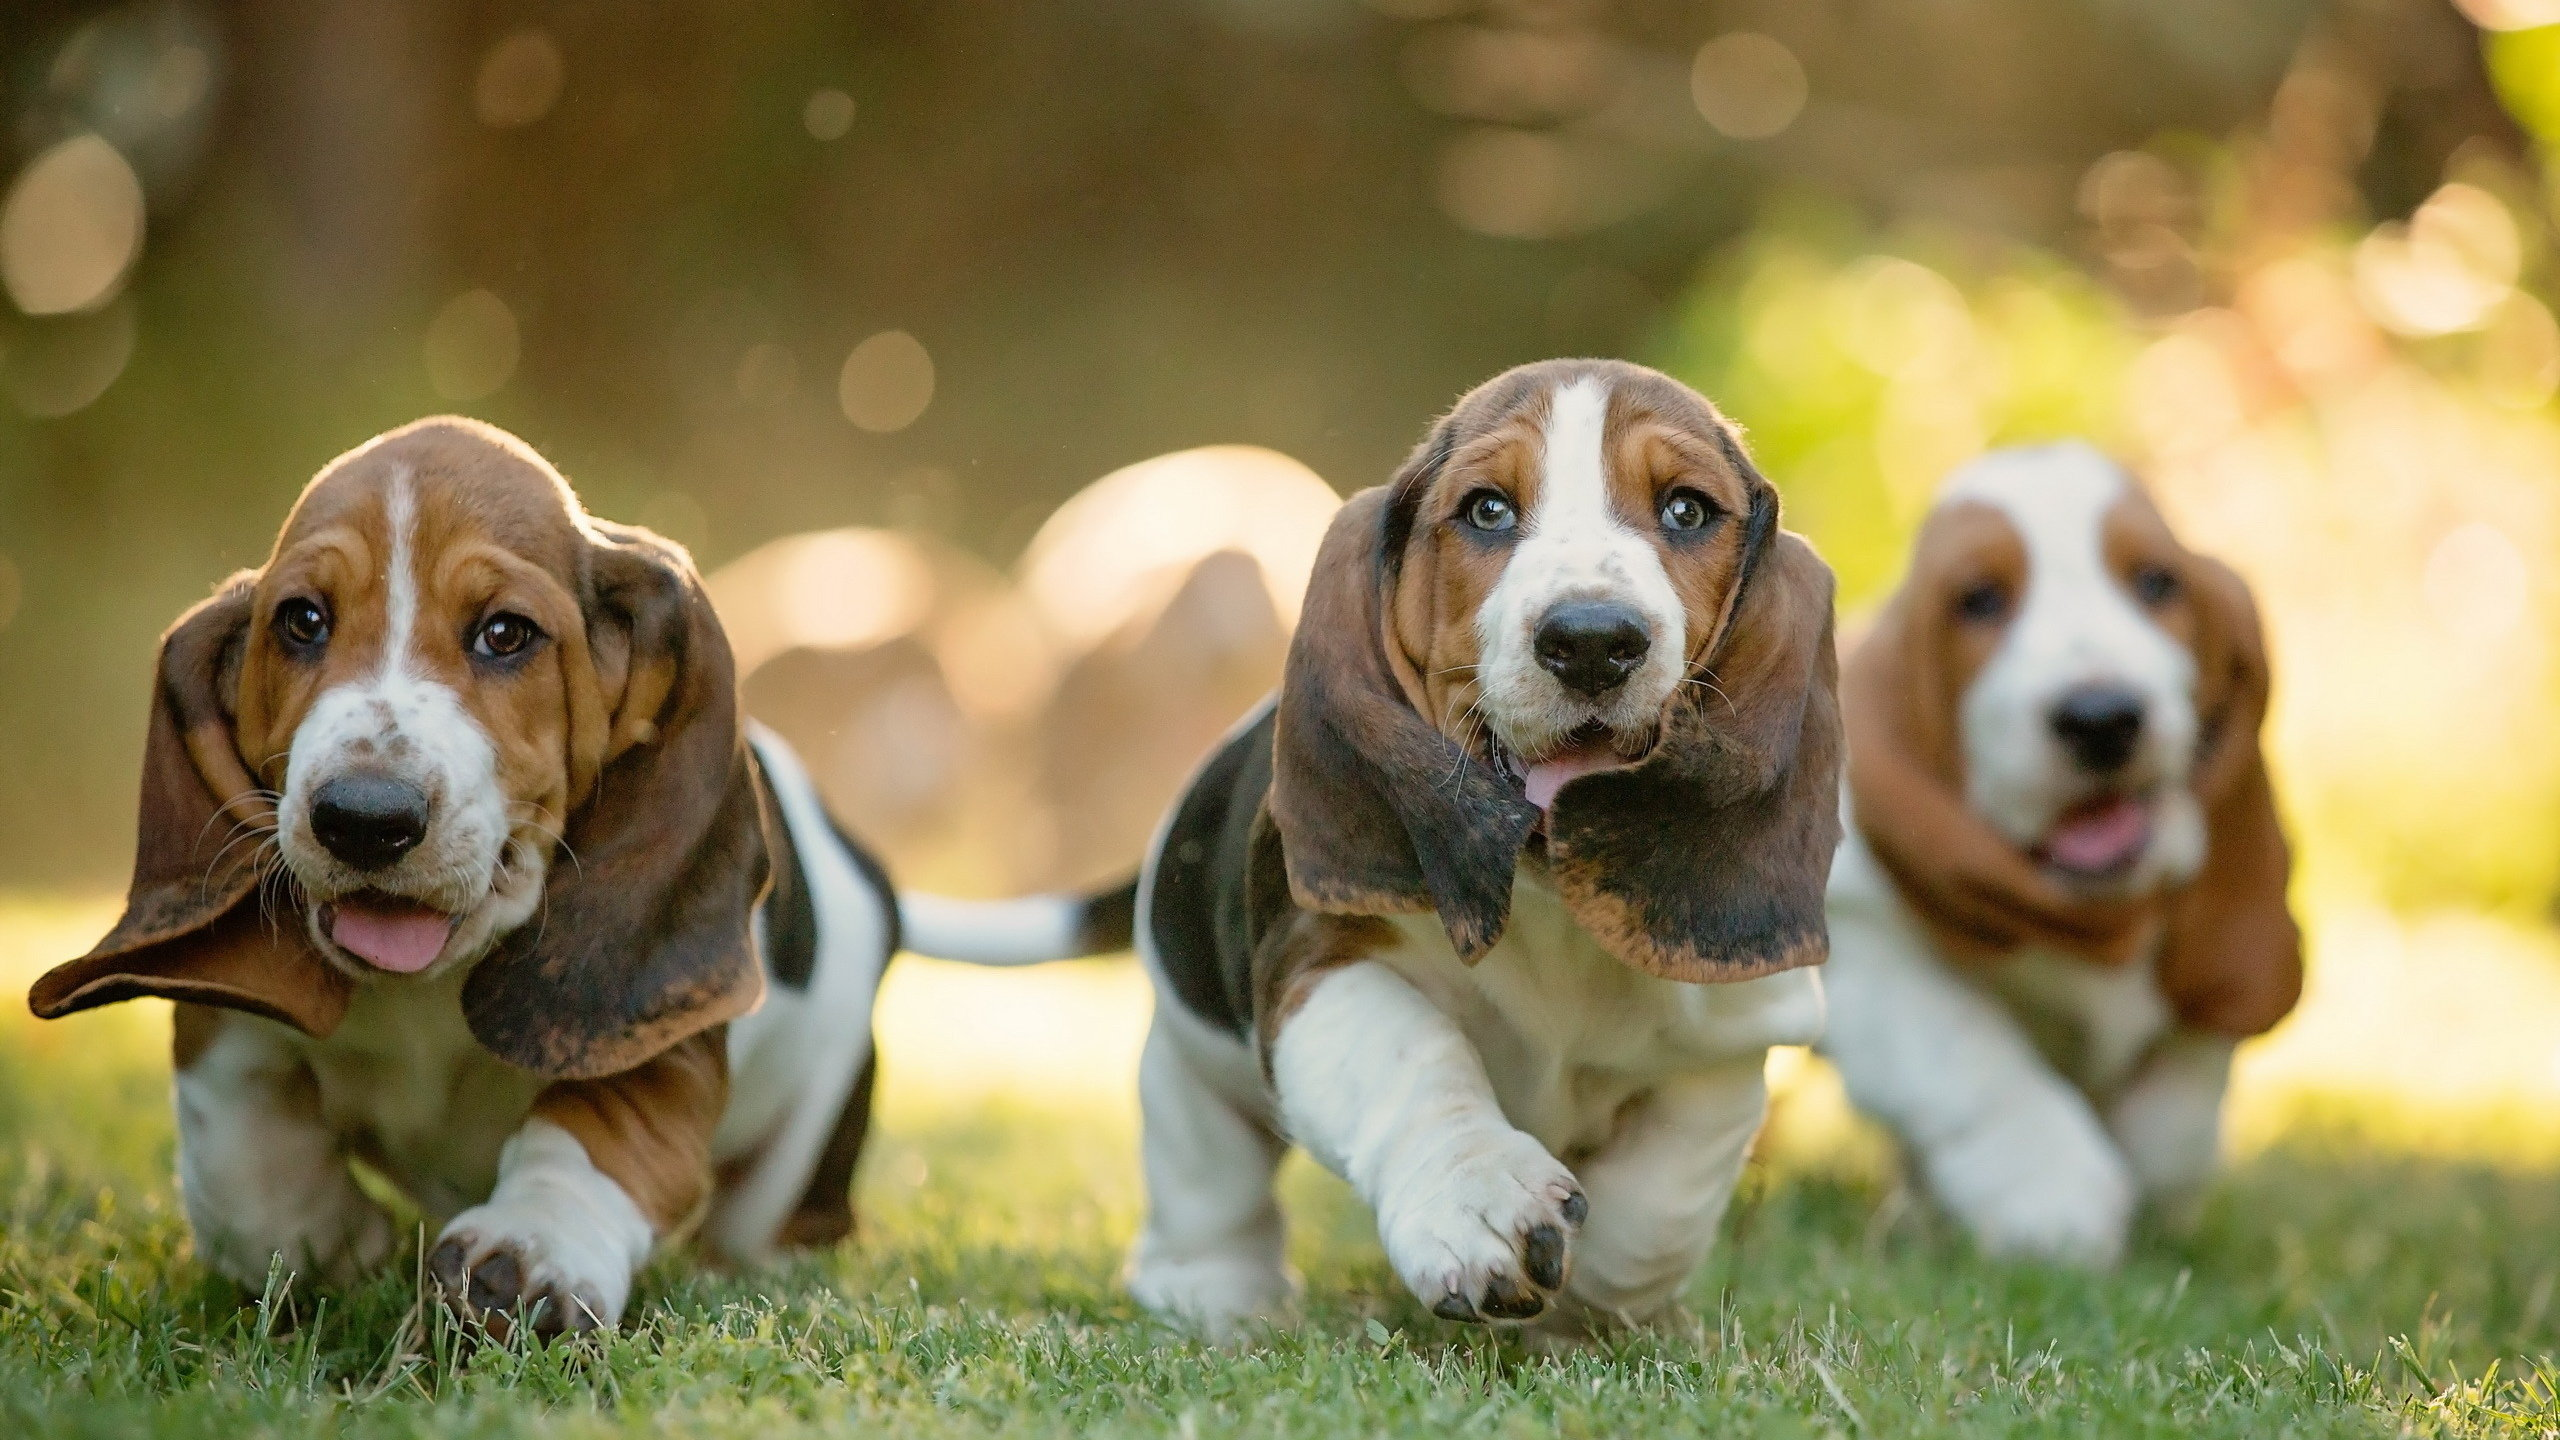 Awesome Basset Hound free wallpaper ID:214117 for hd 2560x1440 PC